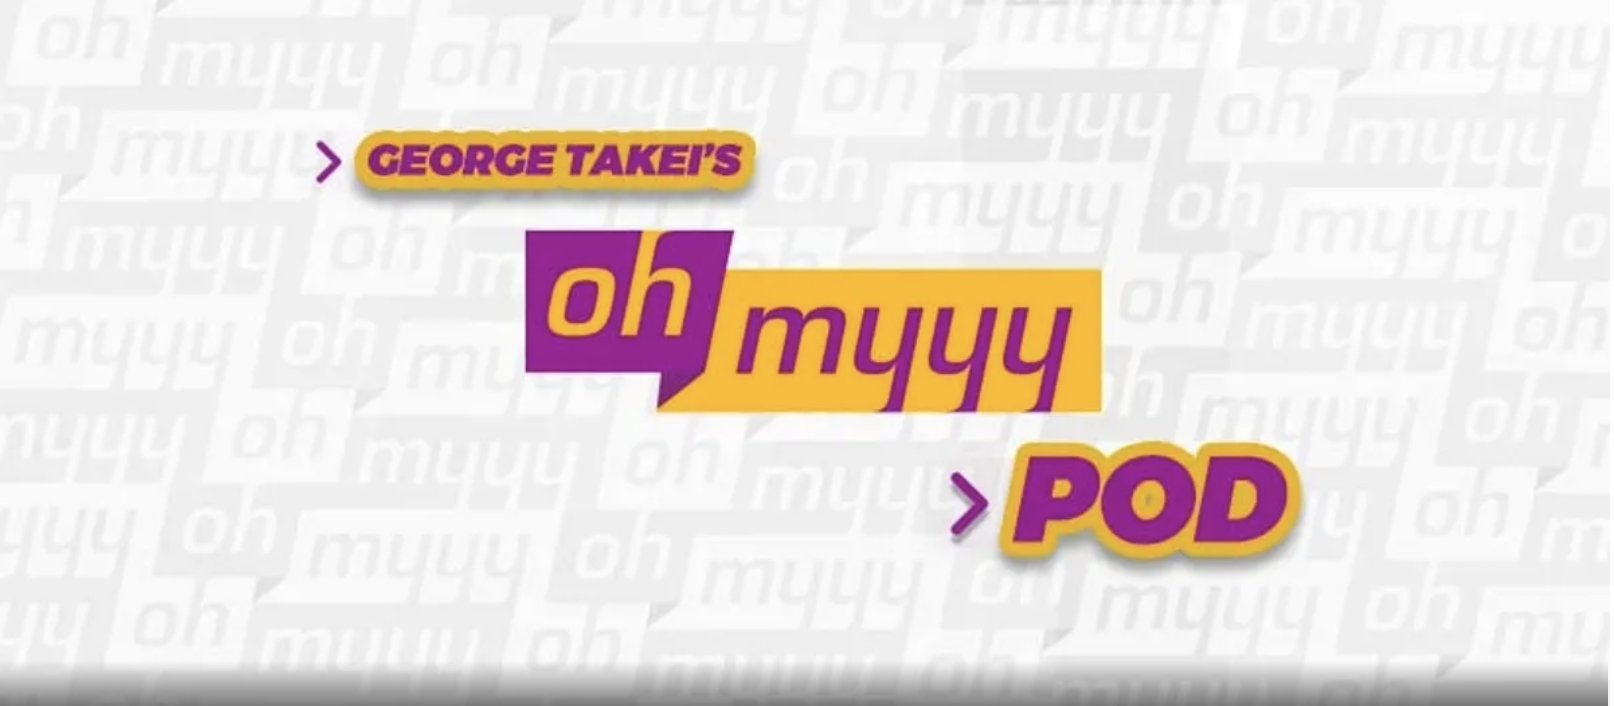 George Takei's Oh Myyy Pod! Episode 5: 'To Shame Or Not To Shame'